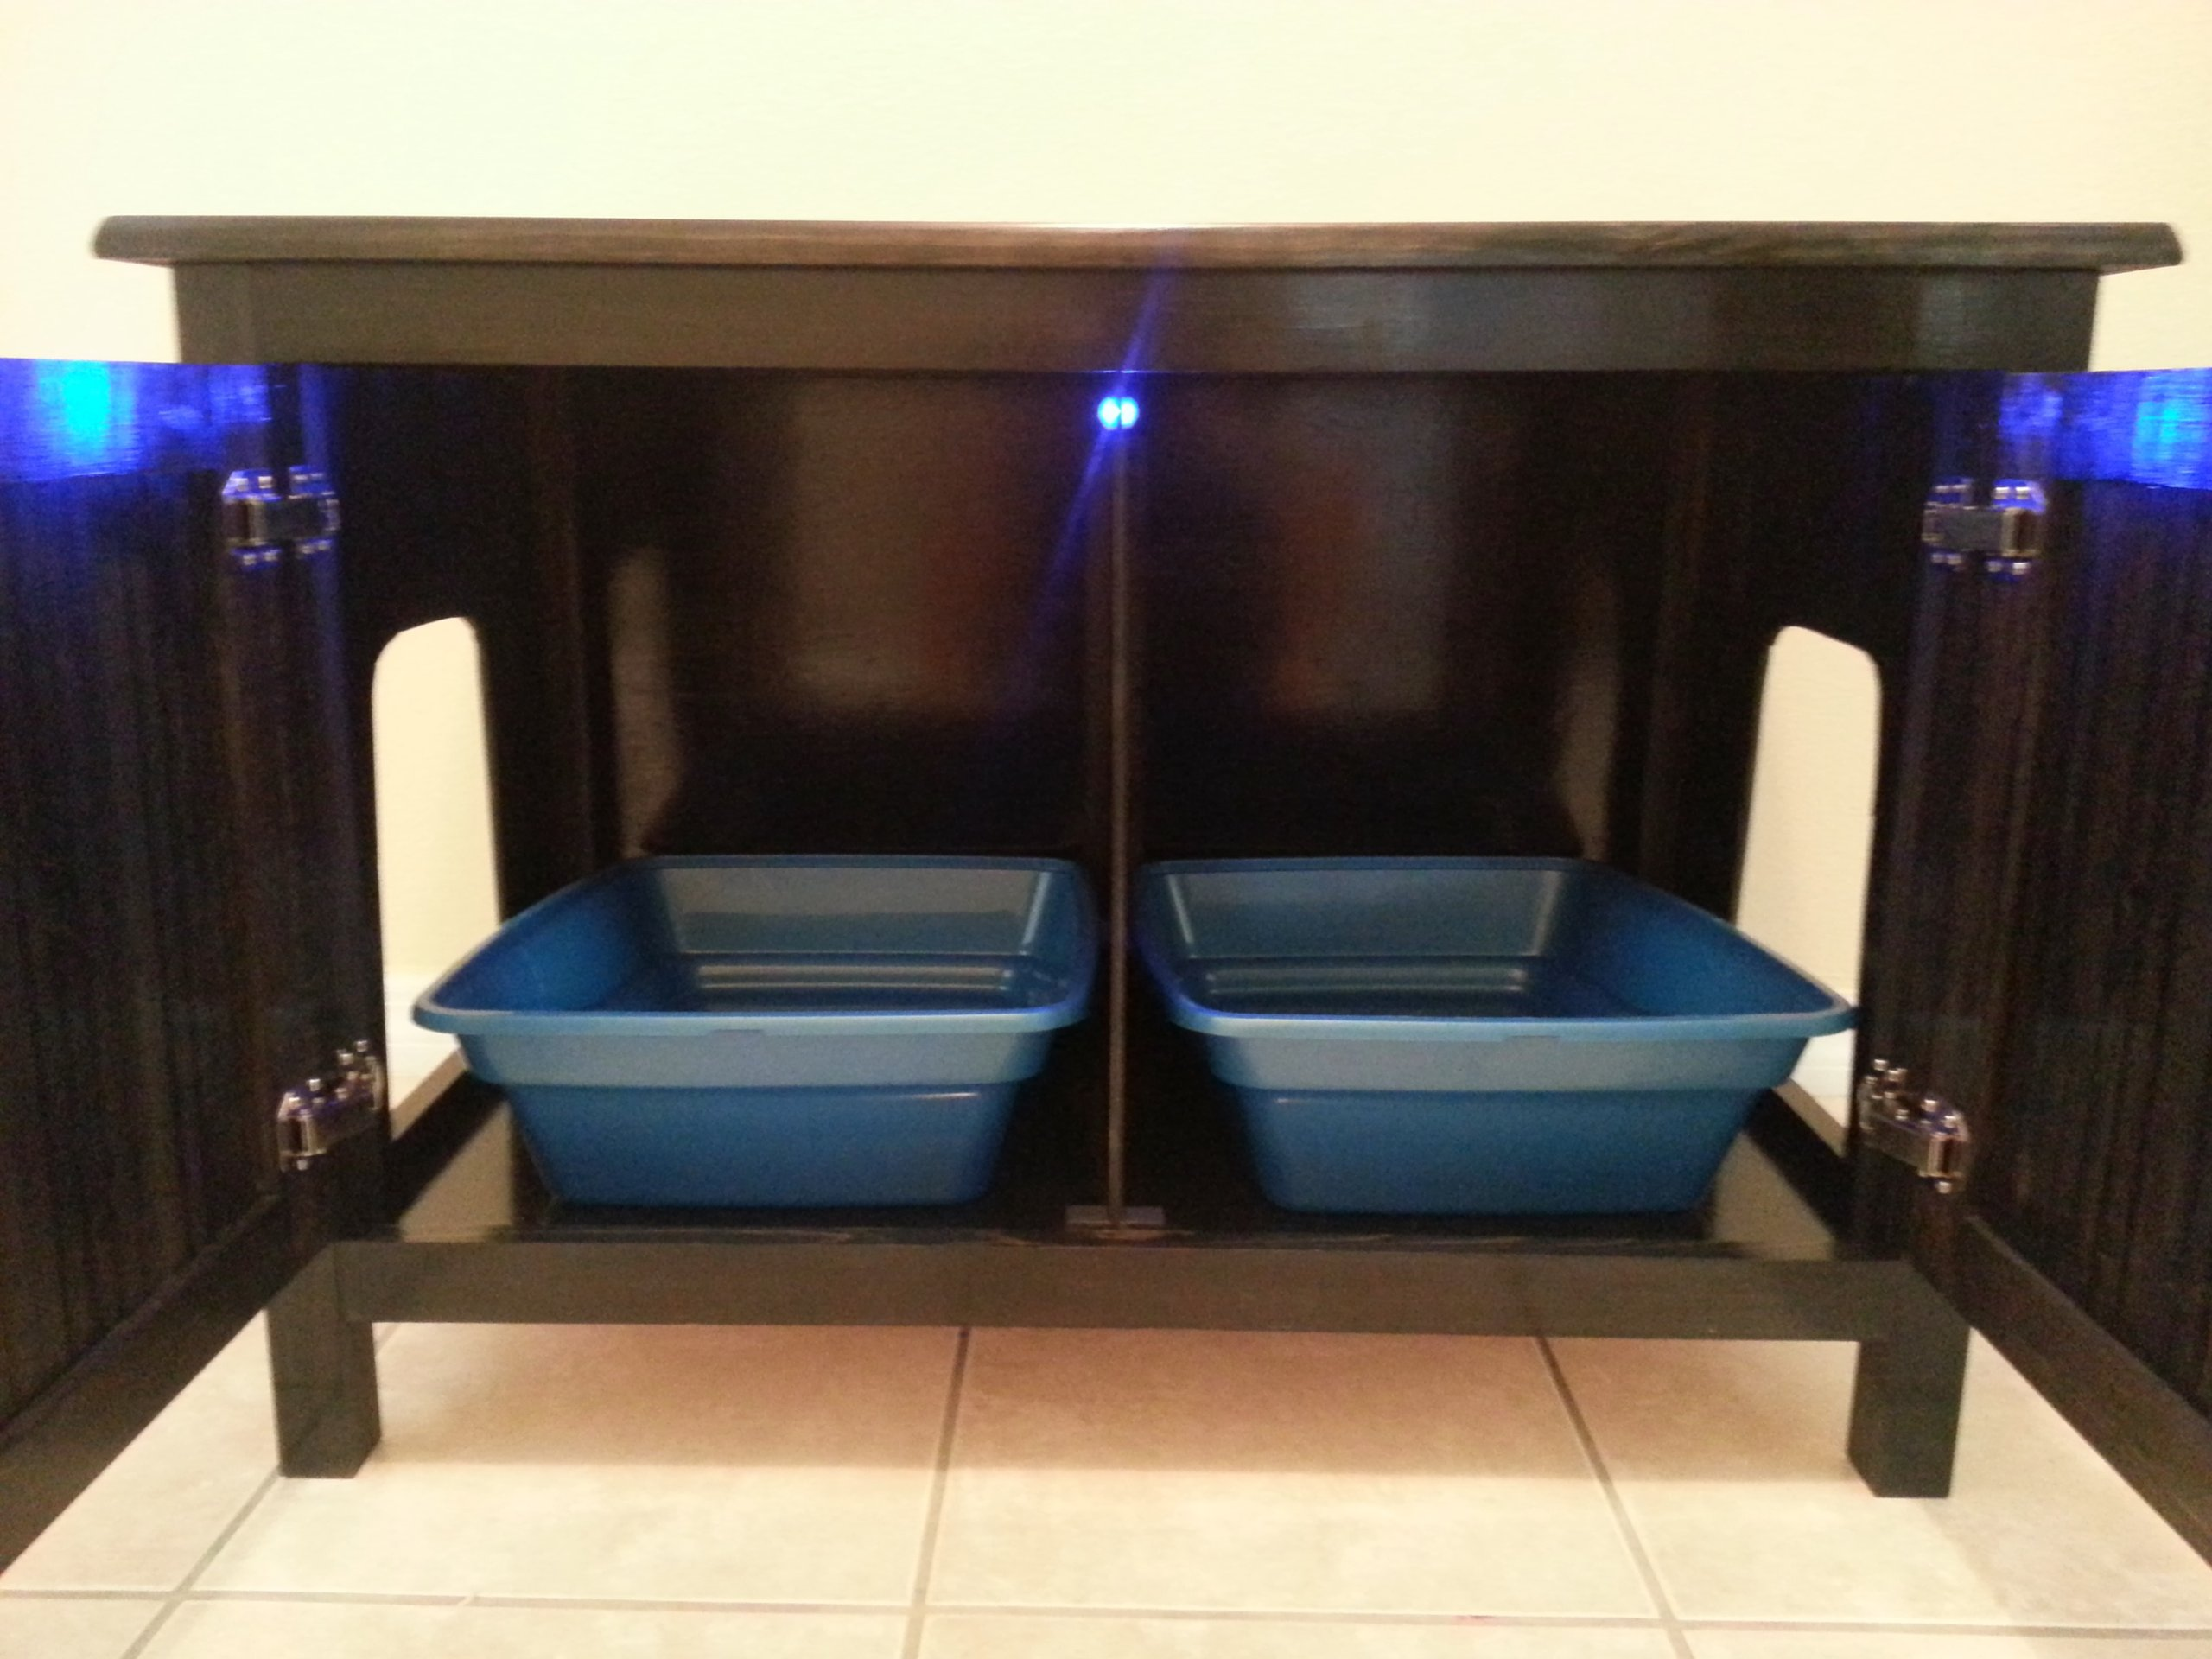 How To Build A Cat Litter Box Cabinet Inside Cat Litter Box Furniture Hidden Litter Box Cat Box